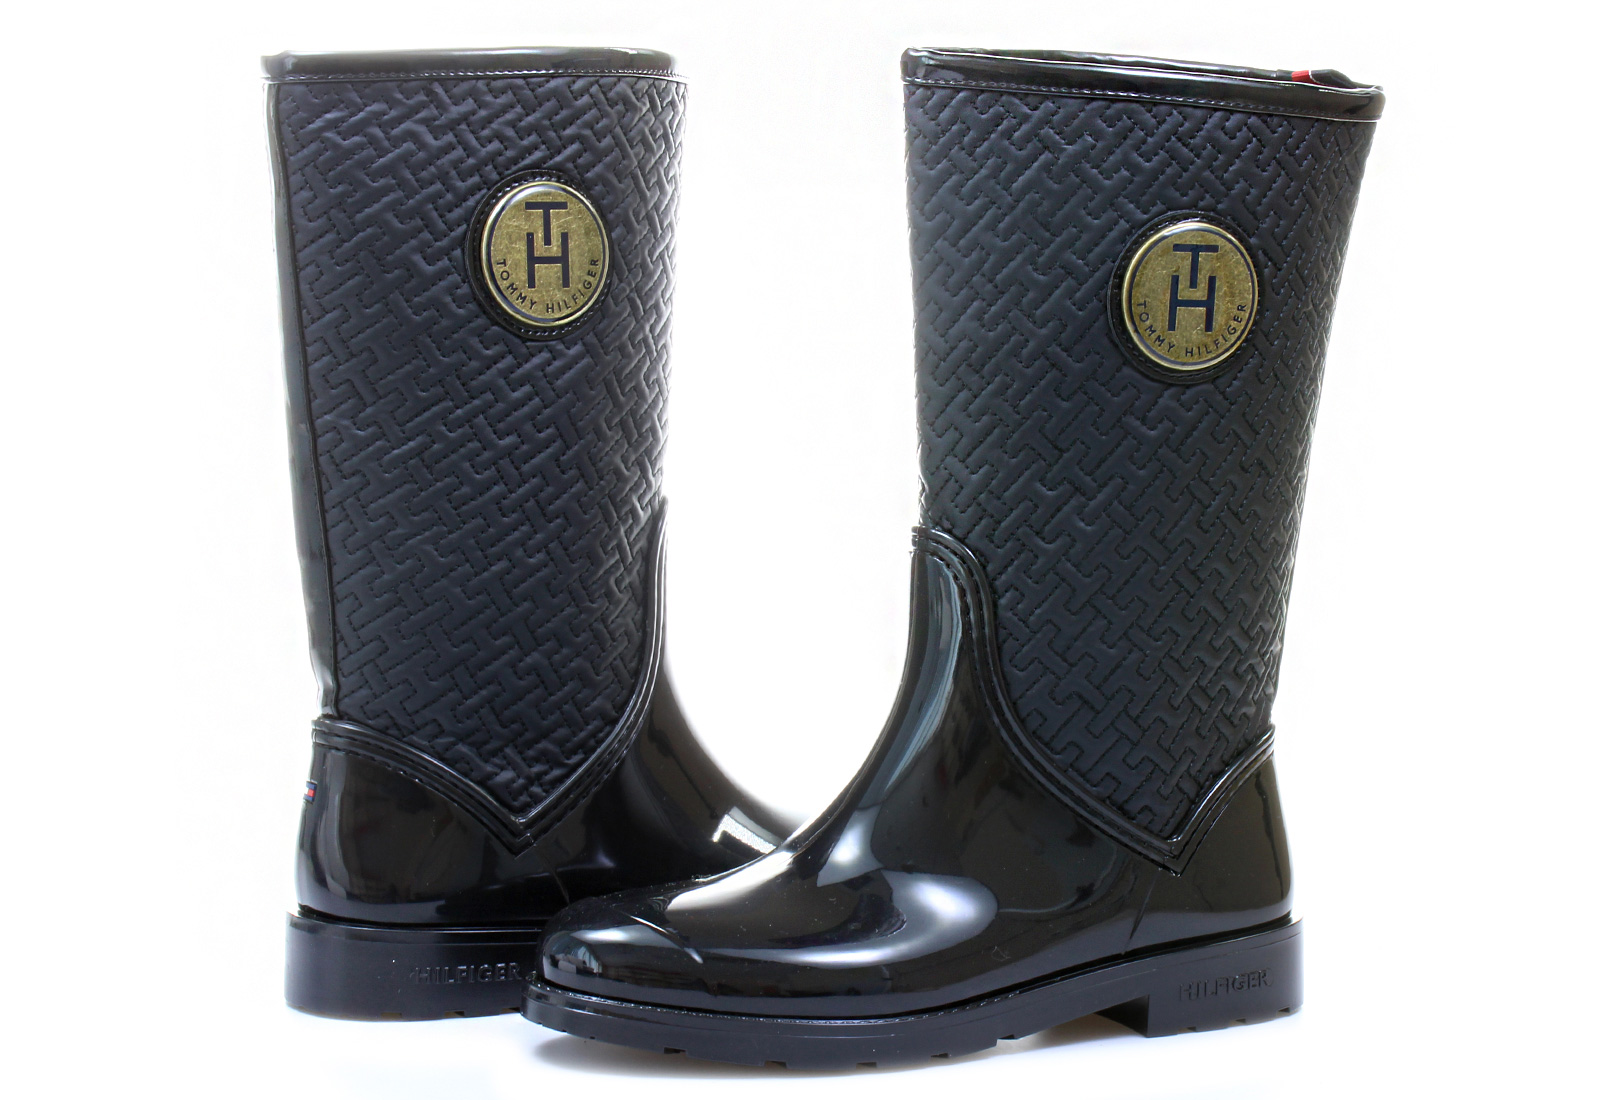 tommy hilfiger boots oxford 15 d 13f 6053 990 online shop for sneakers shoes and boots. Black Bedroom Furniture Sets. Home Design Ideas